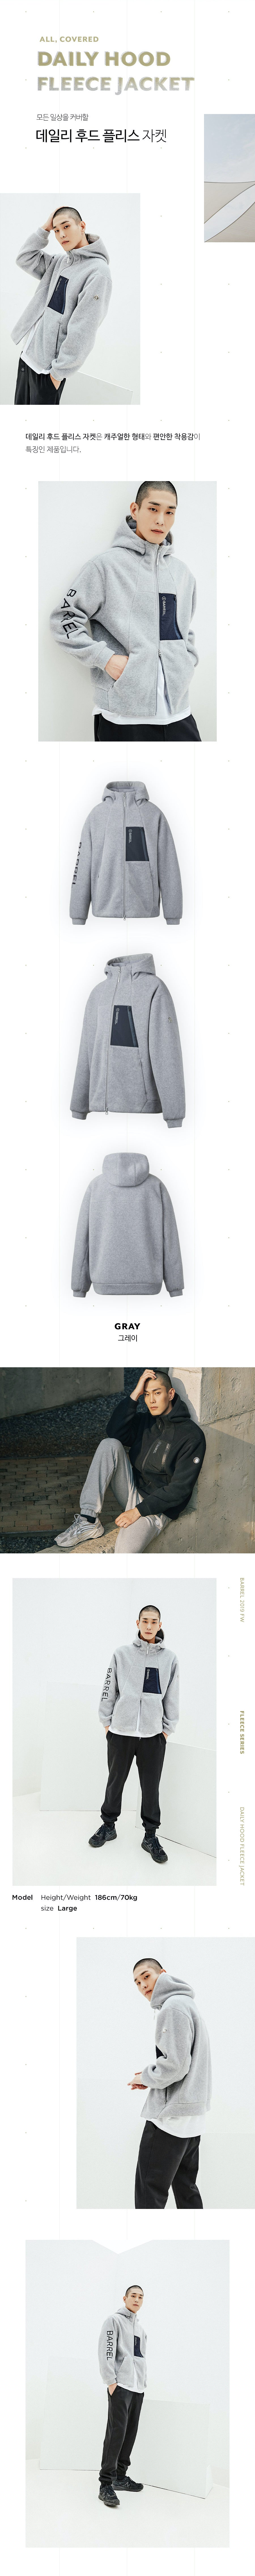 BARREL Unisex Daily Hoodie Fleece Jacket-GREY_image